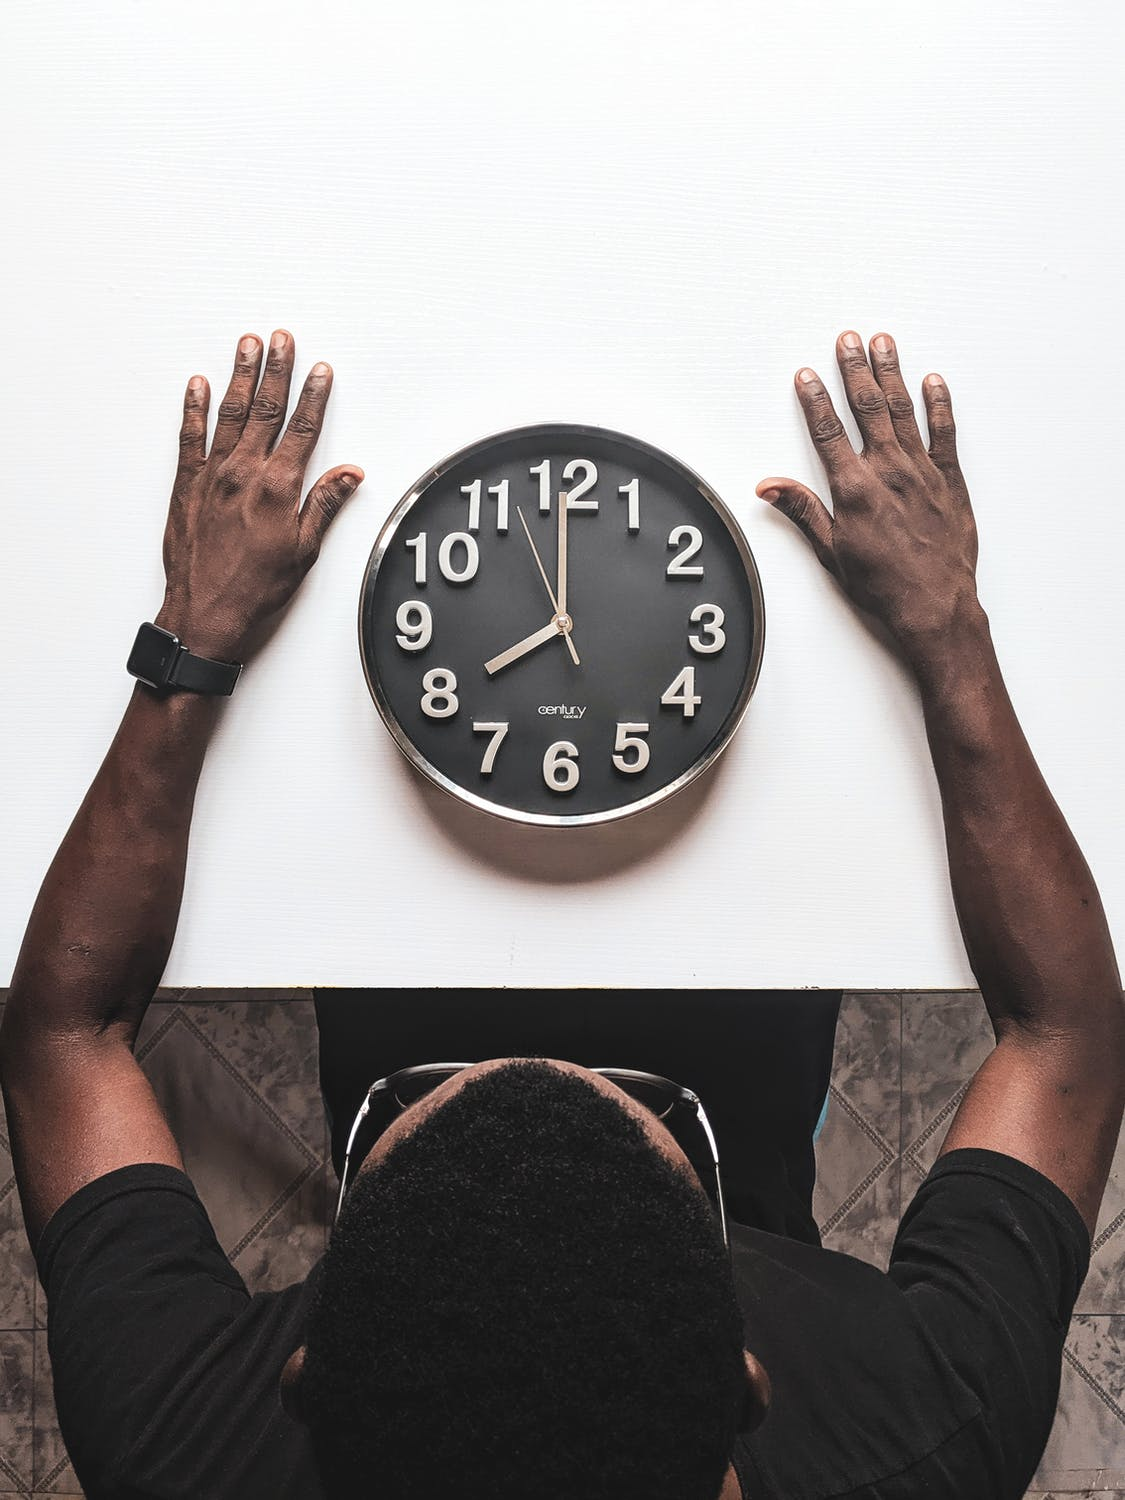 man sitting in front of a clock on a table